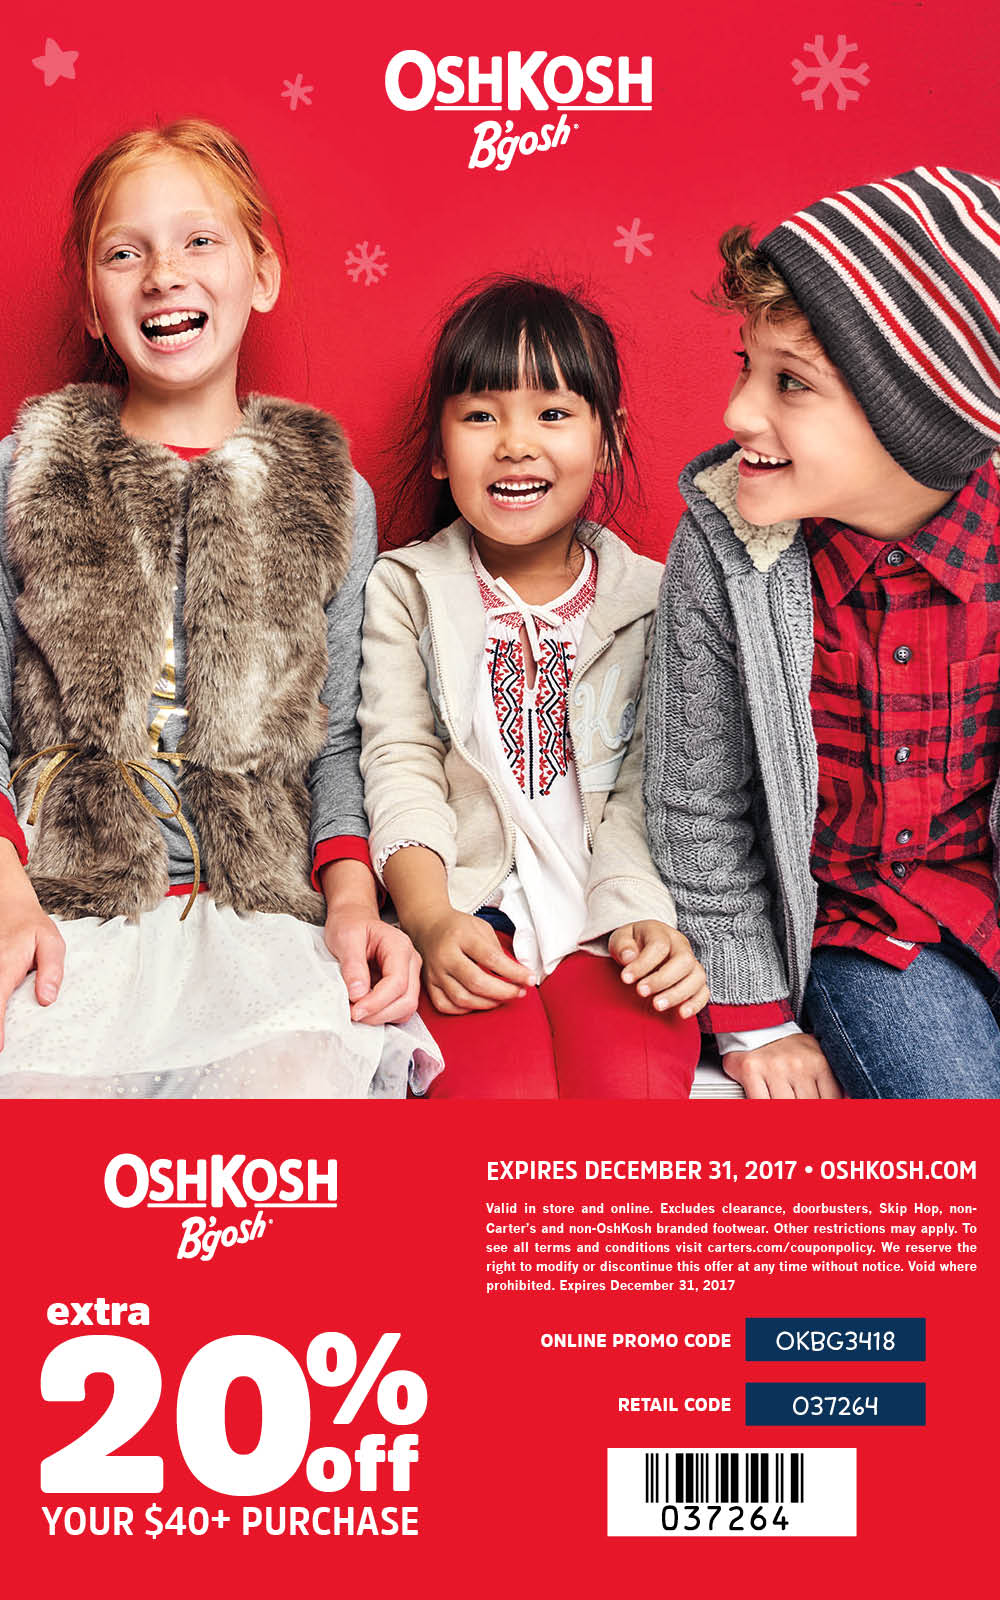 OshKosh 20% Off Coupon